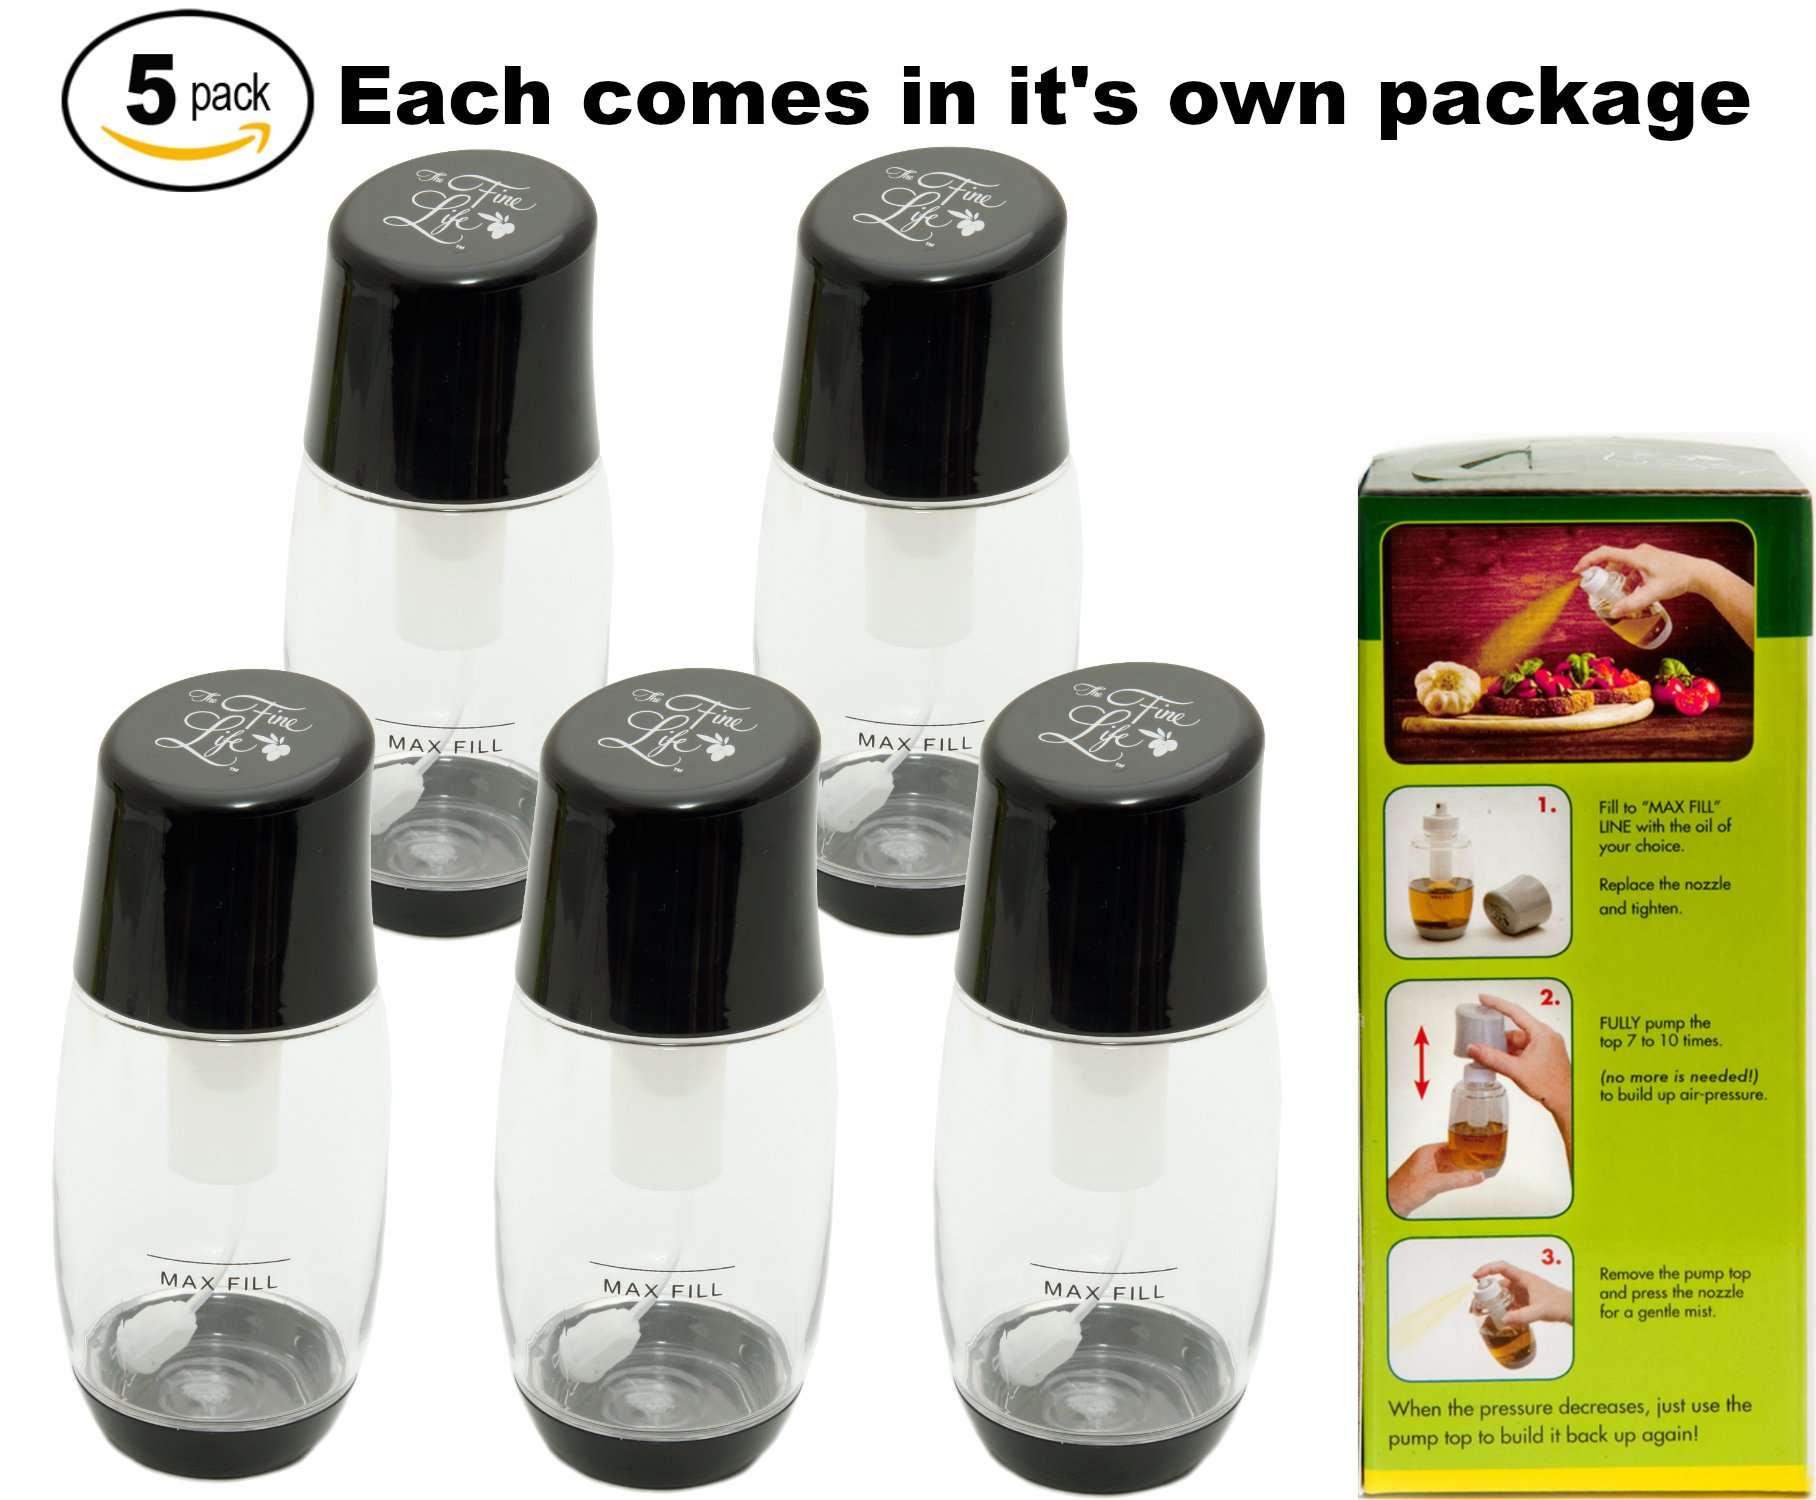 Ideal Kitchen Bundle Olive Oil Sprayer Mister - 5-Pack - Black by The Fine Life (Image #1)